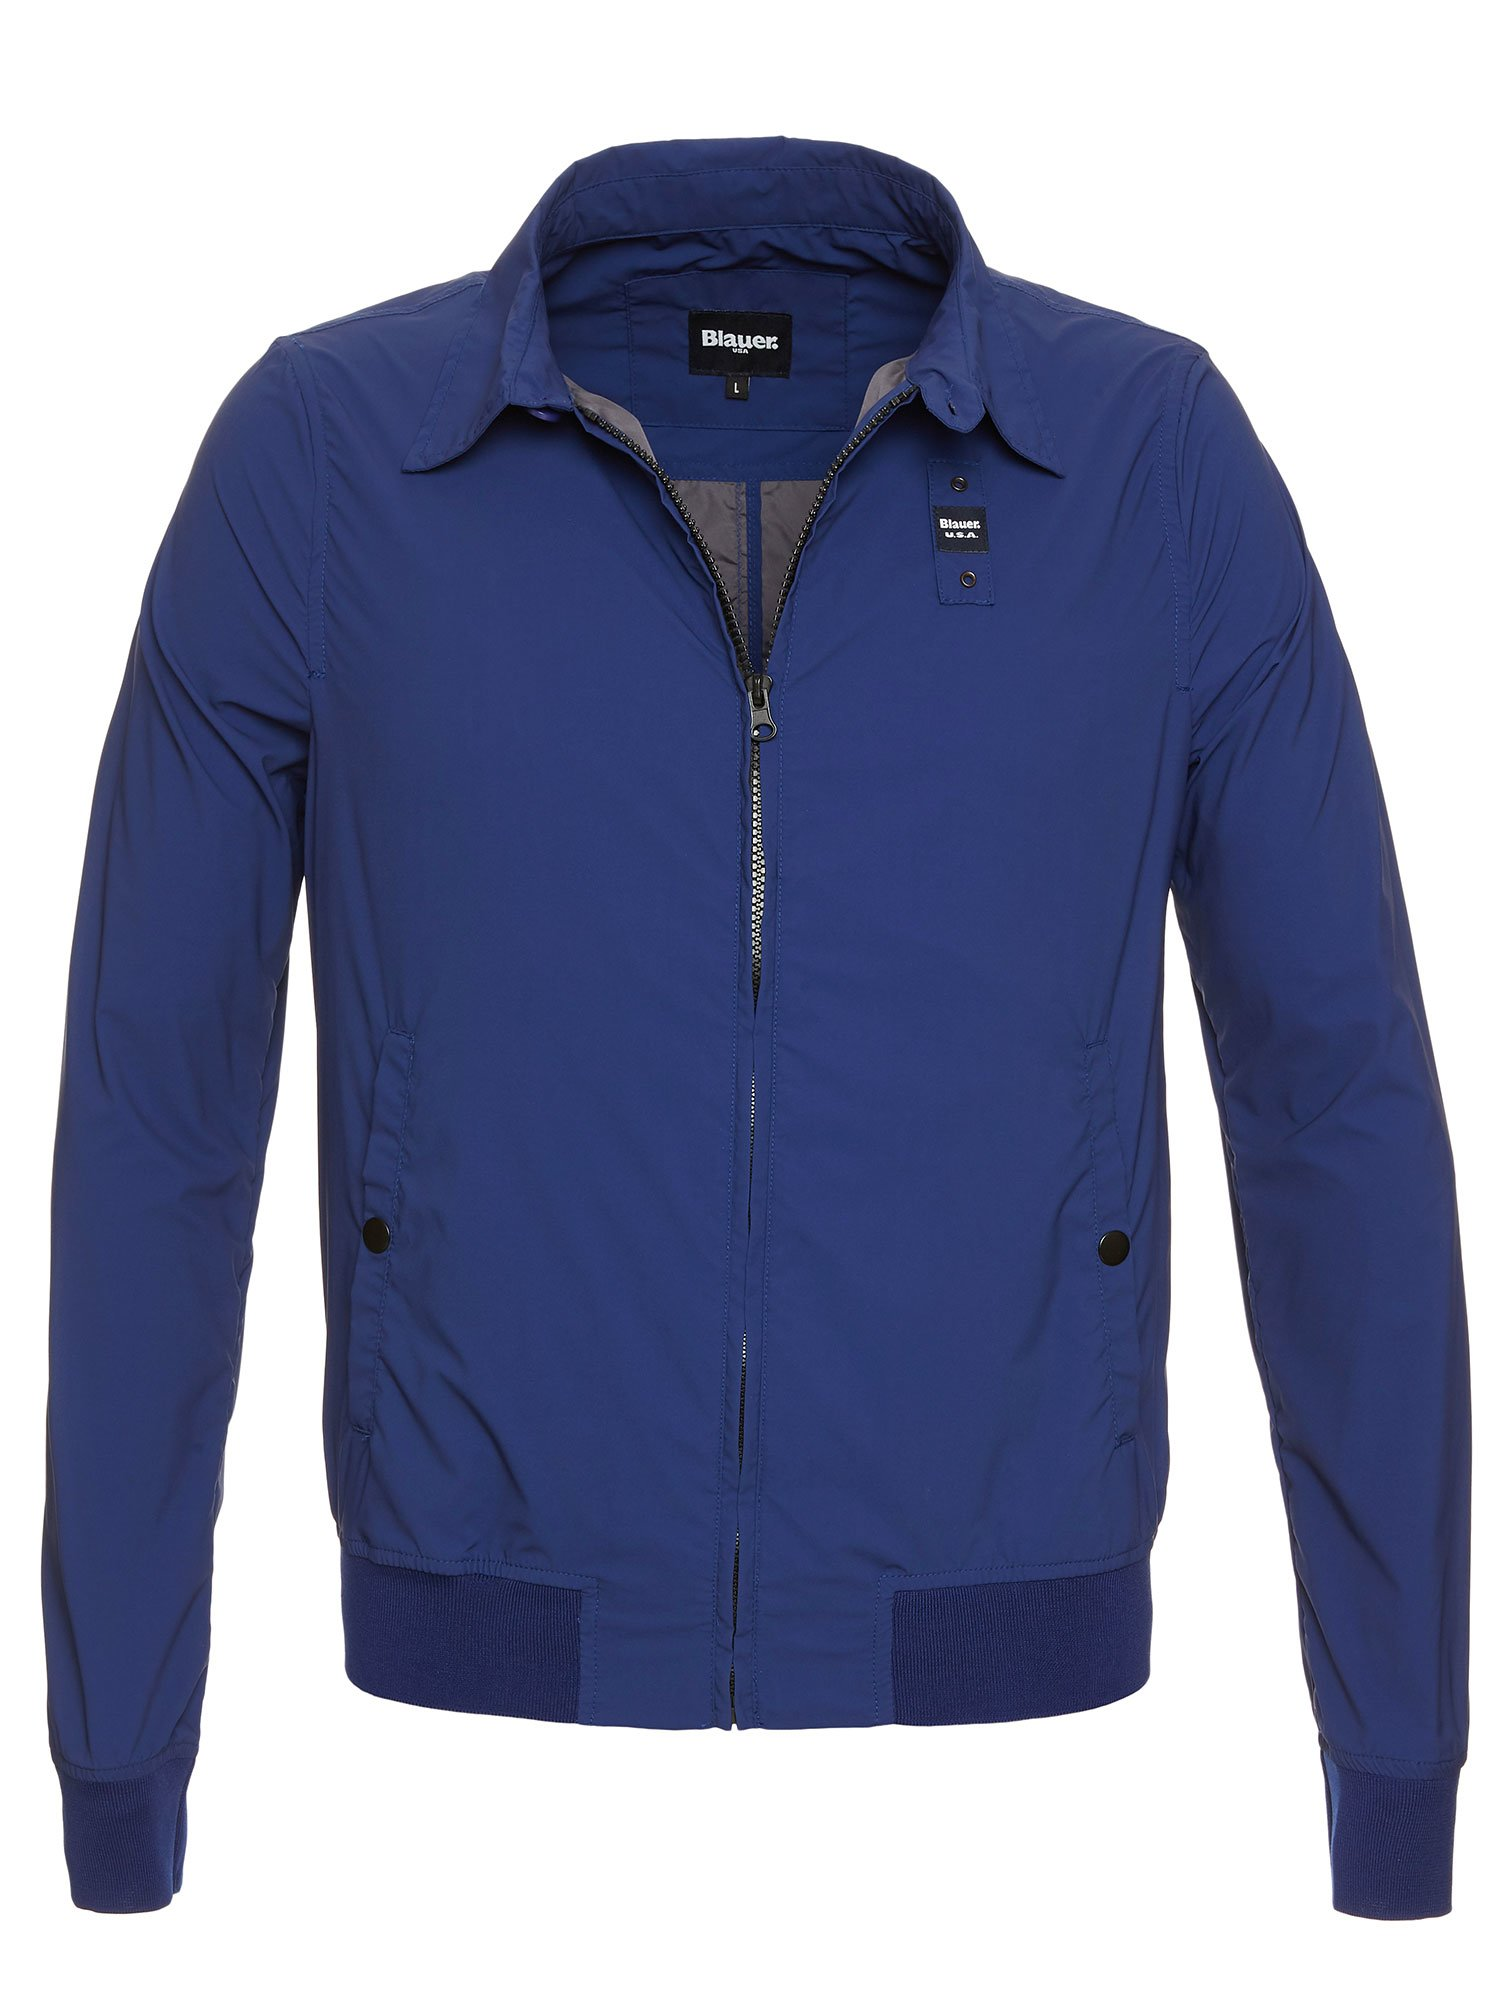 CONNOR LIGHTWEIGHT JACKET WITH COLLAR - Blauer